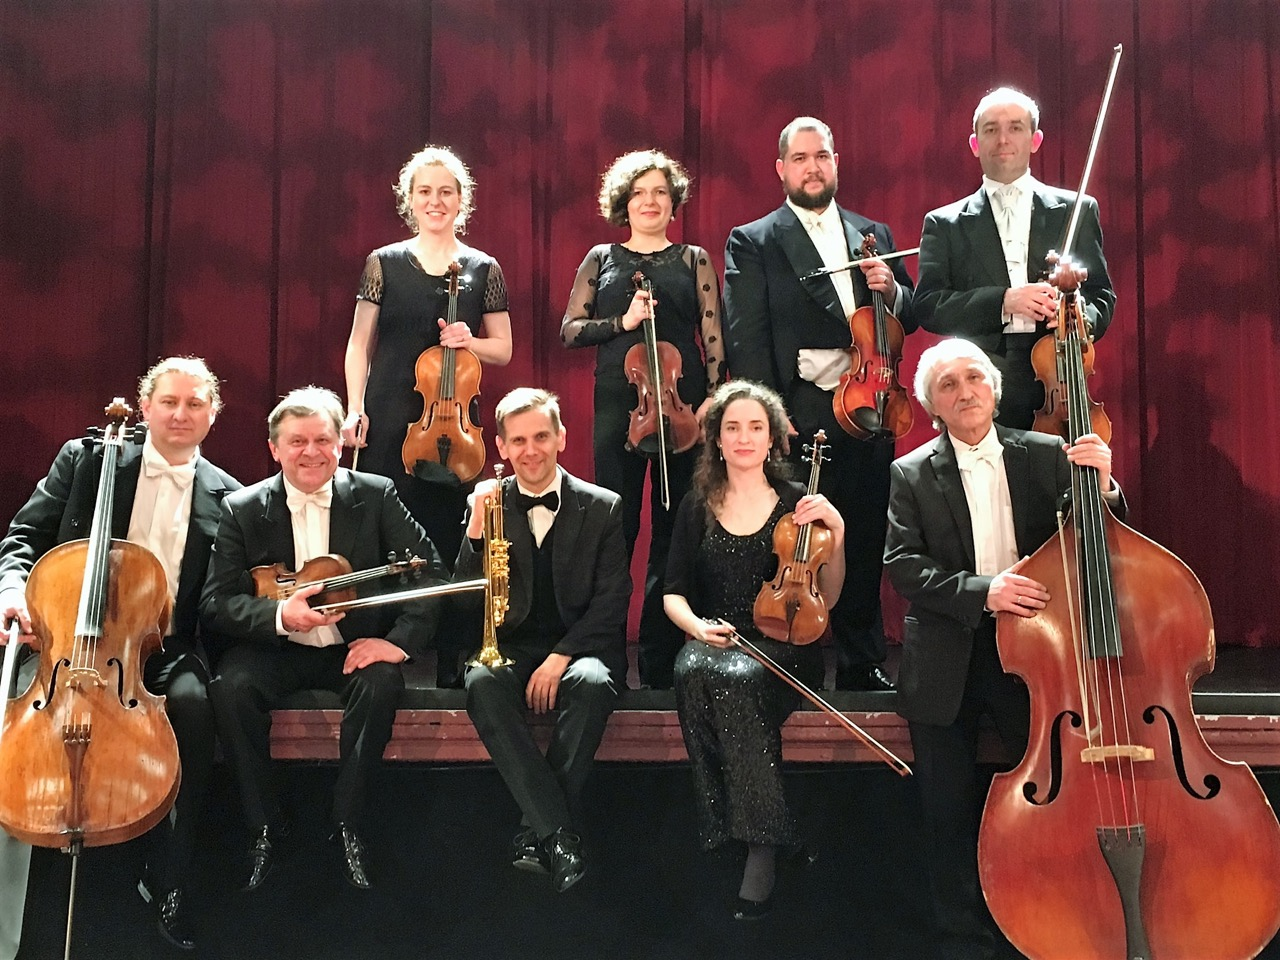 KAMMER PHILHARMONIE EUROPA (Sunday 22nd March, 3pm)